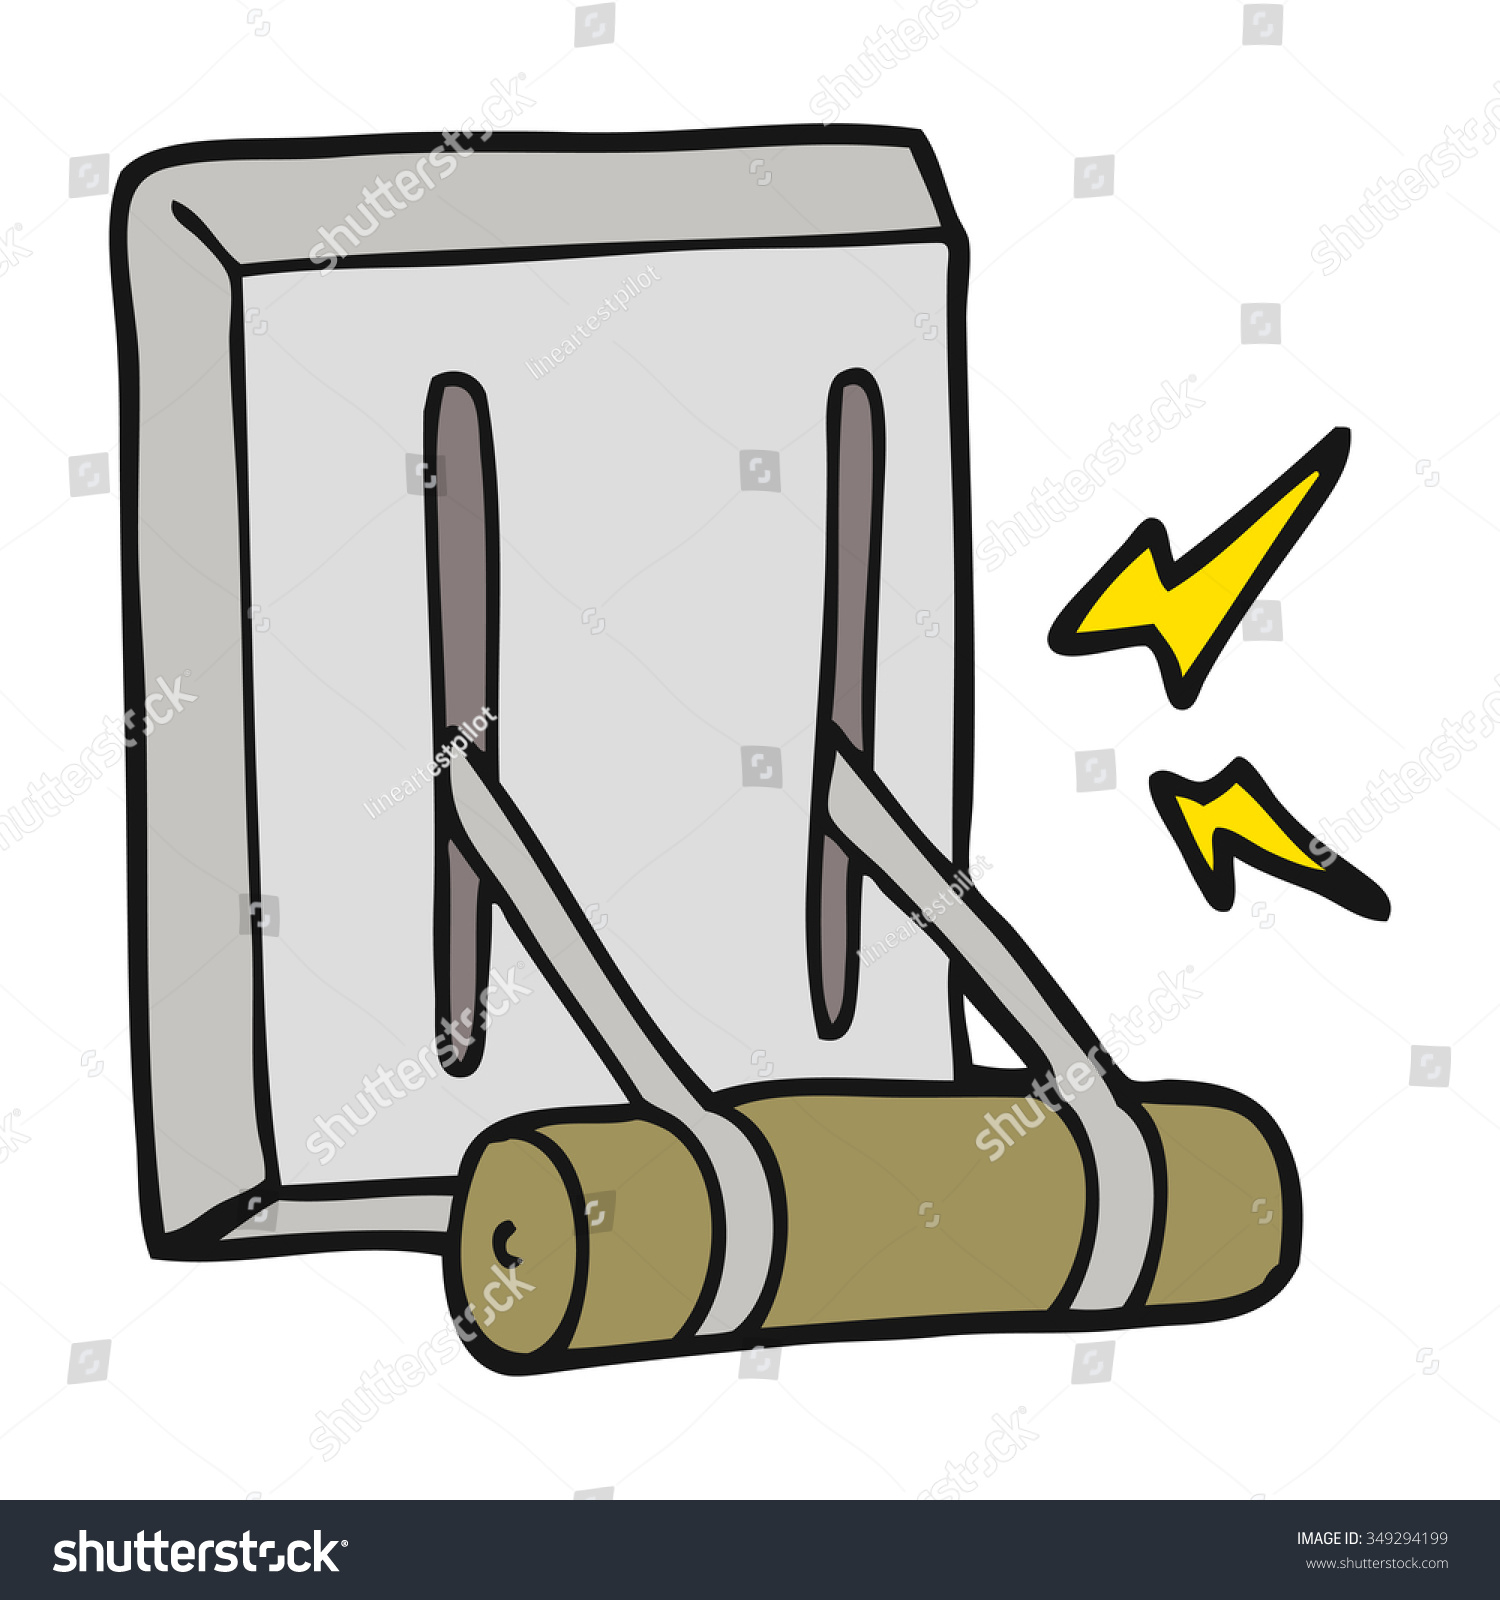 Cartoon Lever Switch : Freehand drawn cartoon electrical switch stock vector